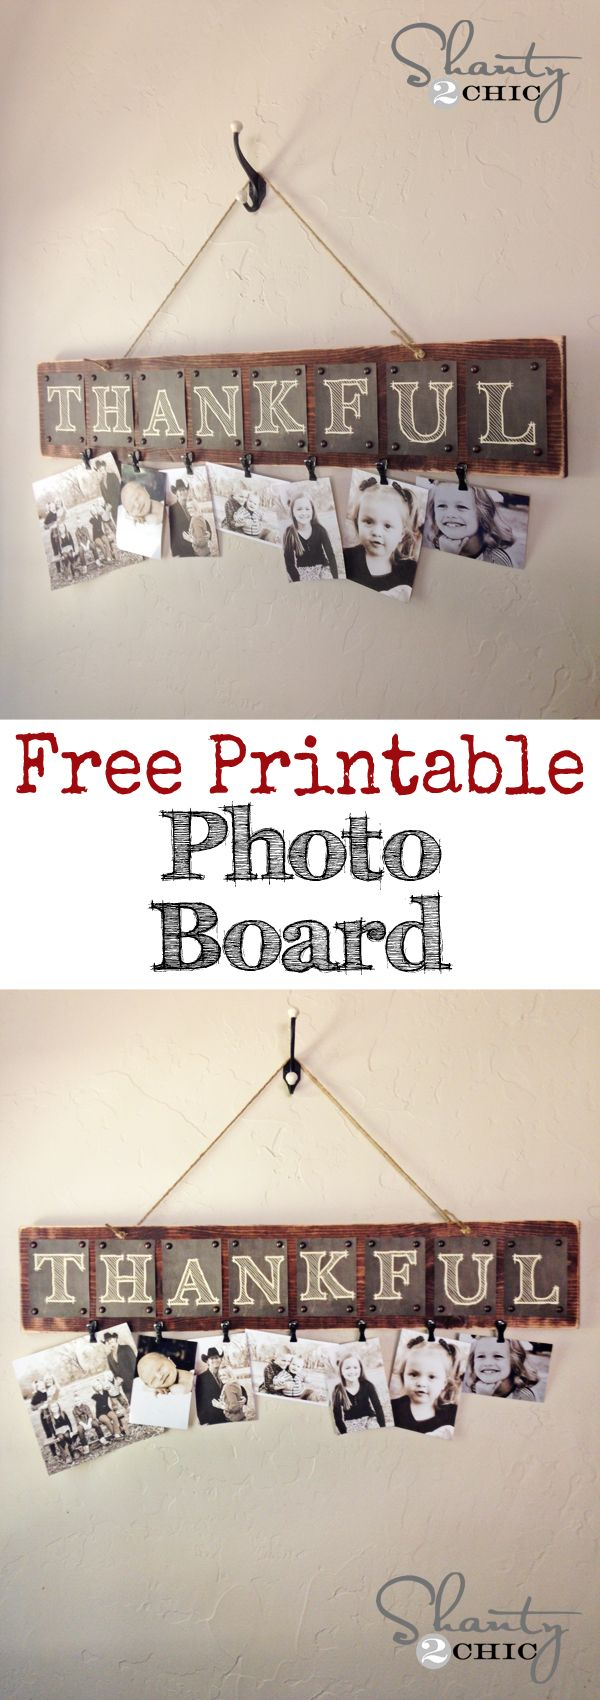 DIY Thankful Photo Board with FREE Printable letters... So sweet! LOVE it! Fun gift idea too